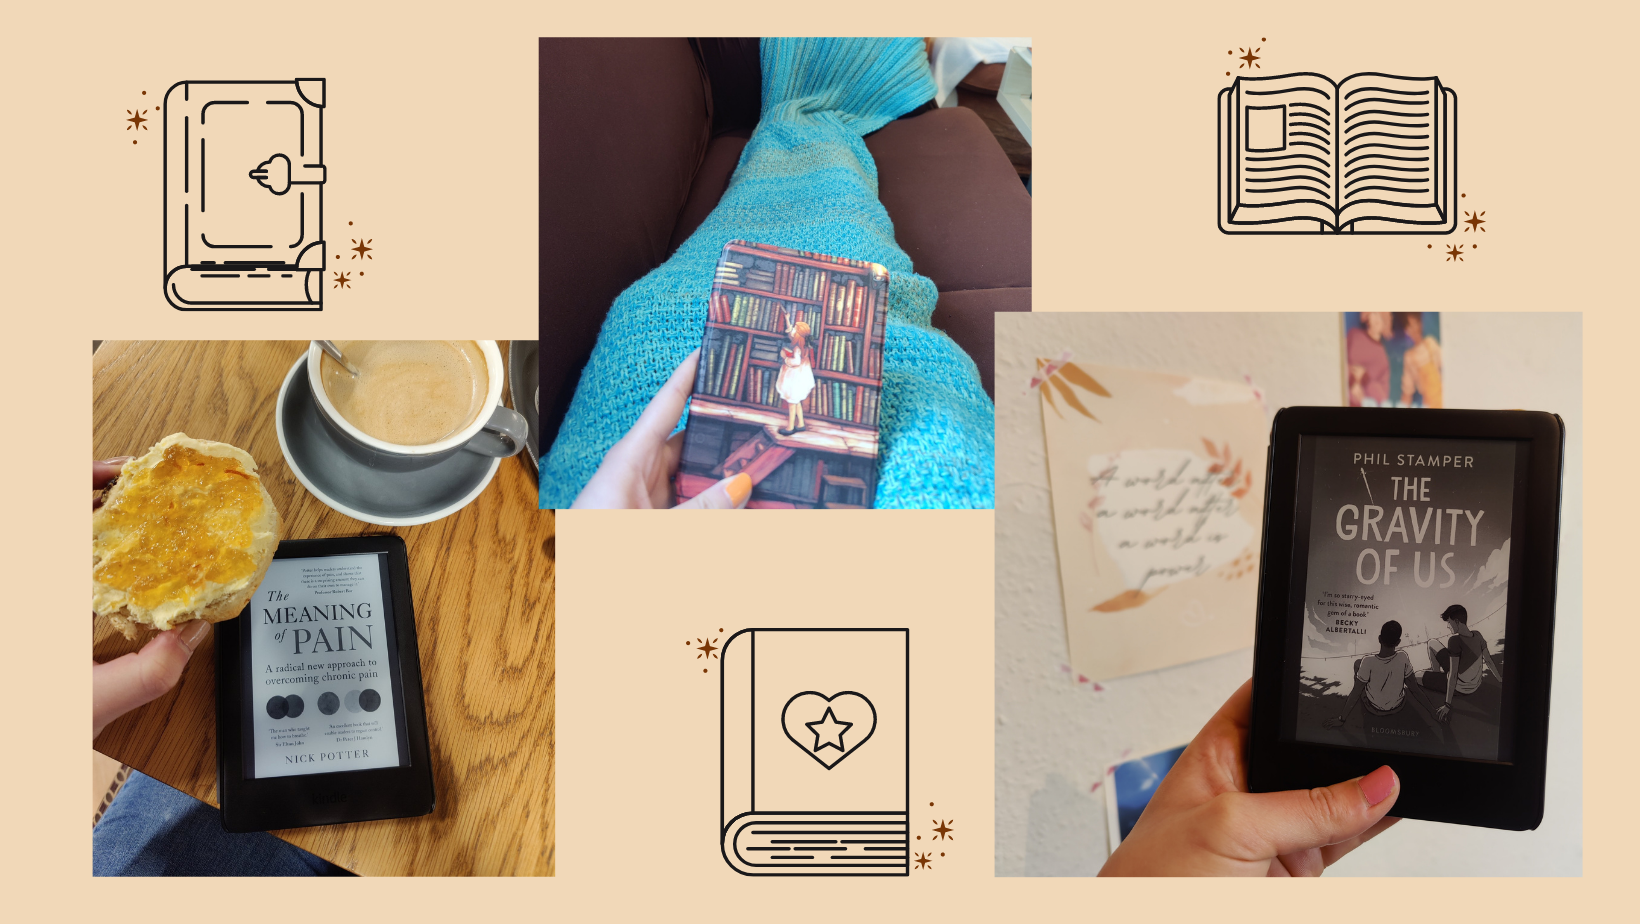 Photo collage showing a Kindle e-reader held, or on a table next to a cup of coffee, on a yellow background with small book doodles scattered around.